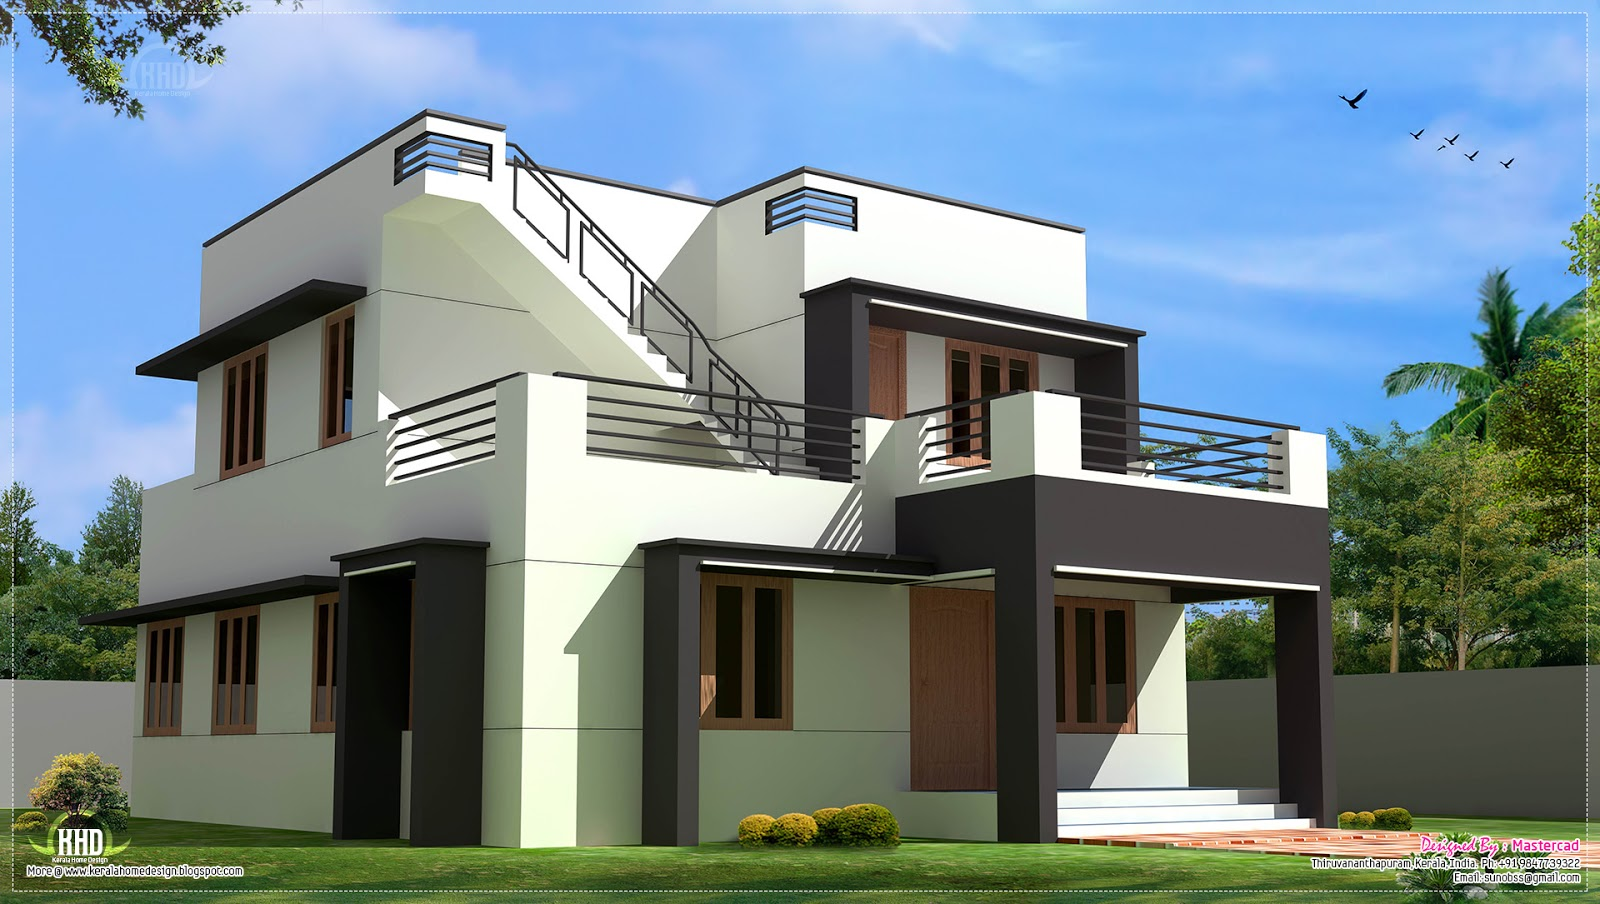 Modern house design in 1700 kerala home design for Designing your new home